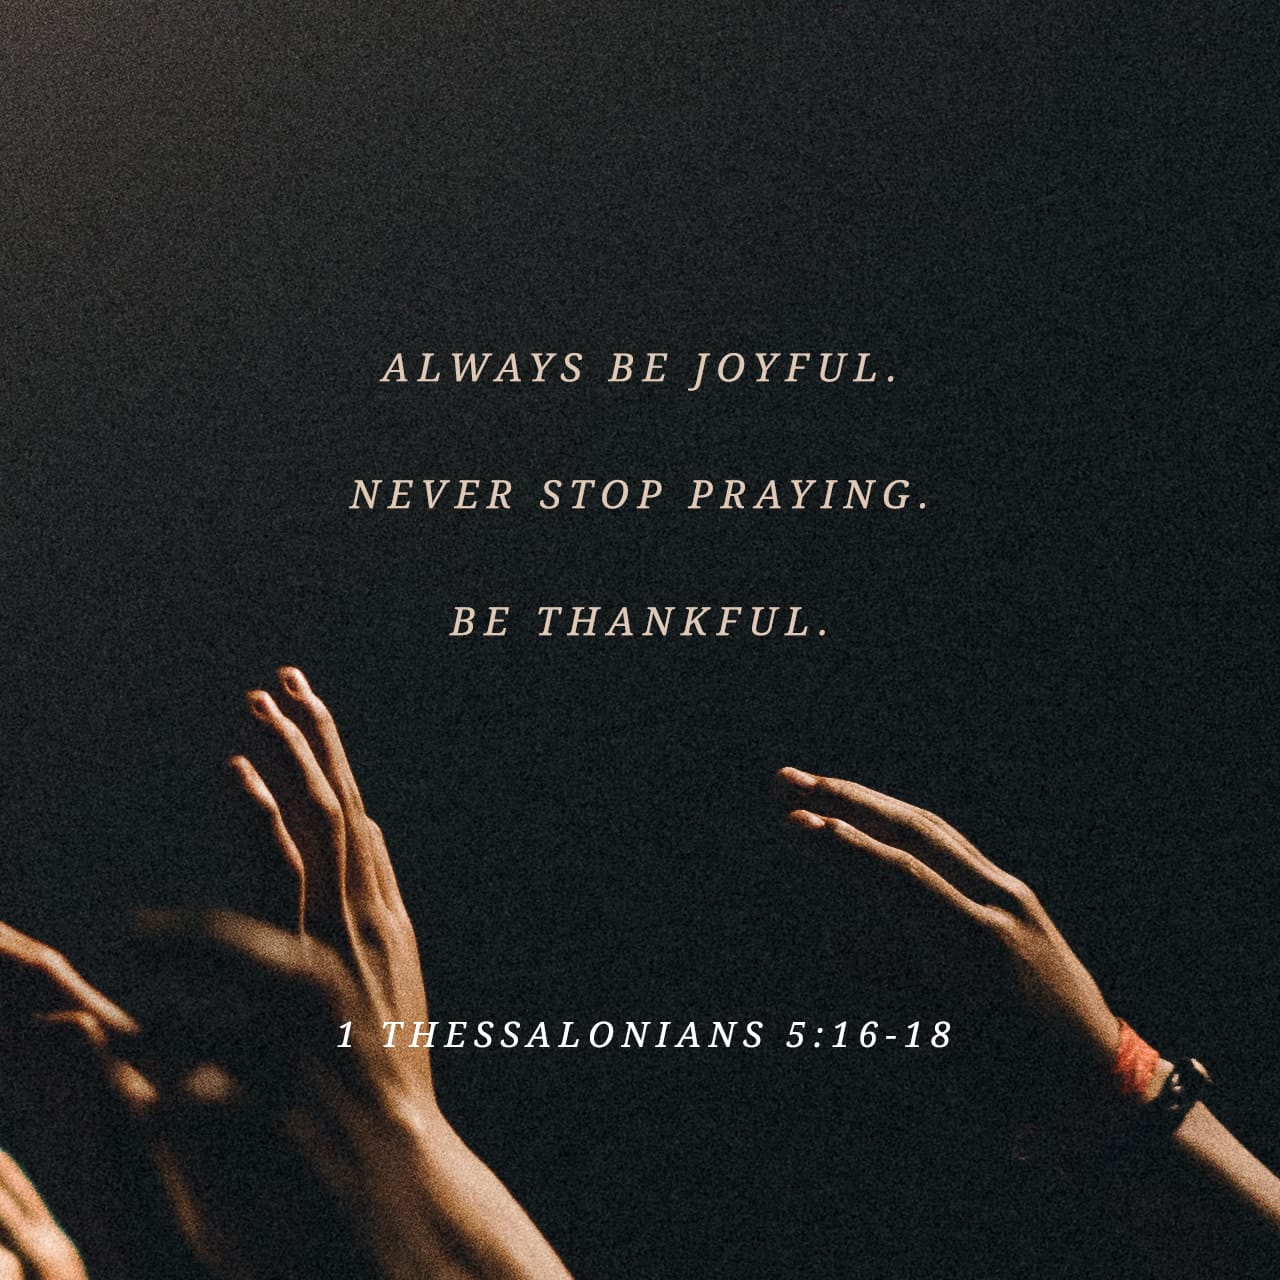 I Thessalonians 5:18 in everything give thanks; for this is the will of God in Christ Jesus for you. | New King James Version (NKJV)